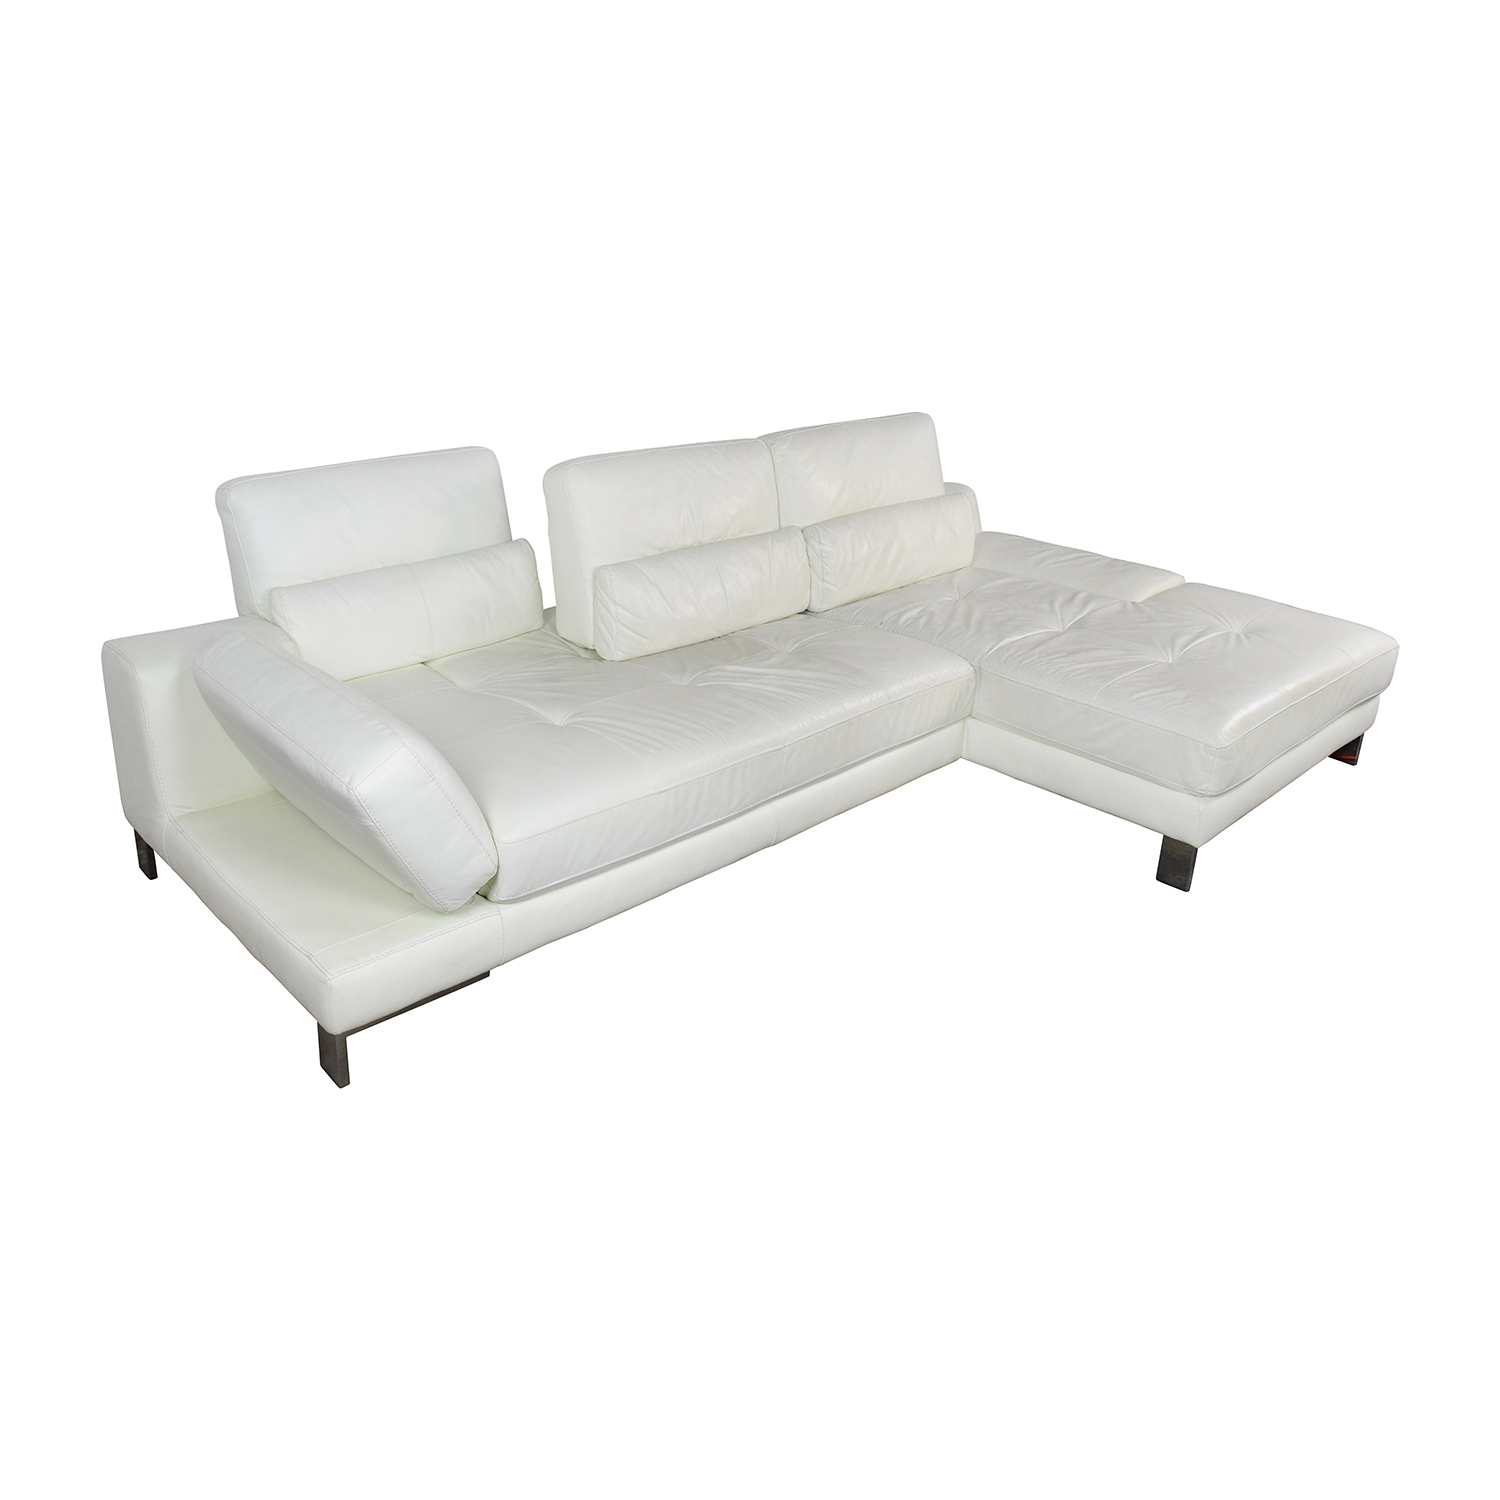 72 Off Mobilia Canada Mobilia Canada Funktion White Leather Sectional Sofas